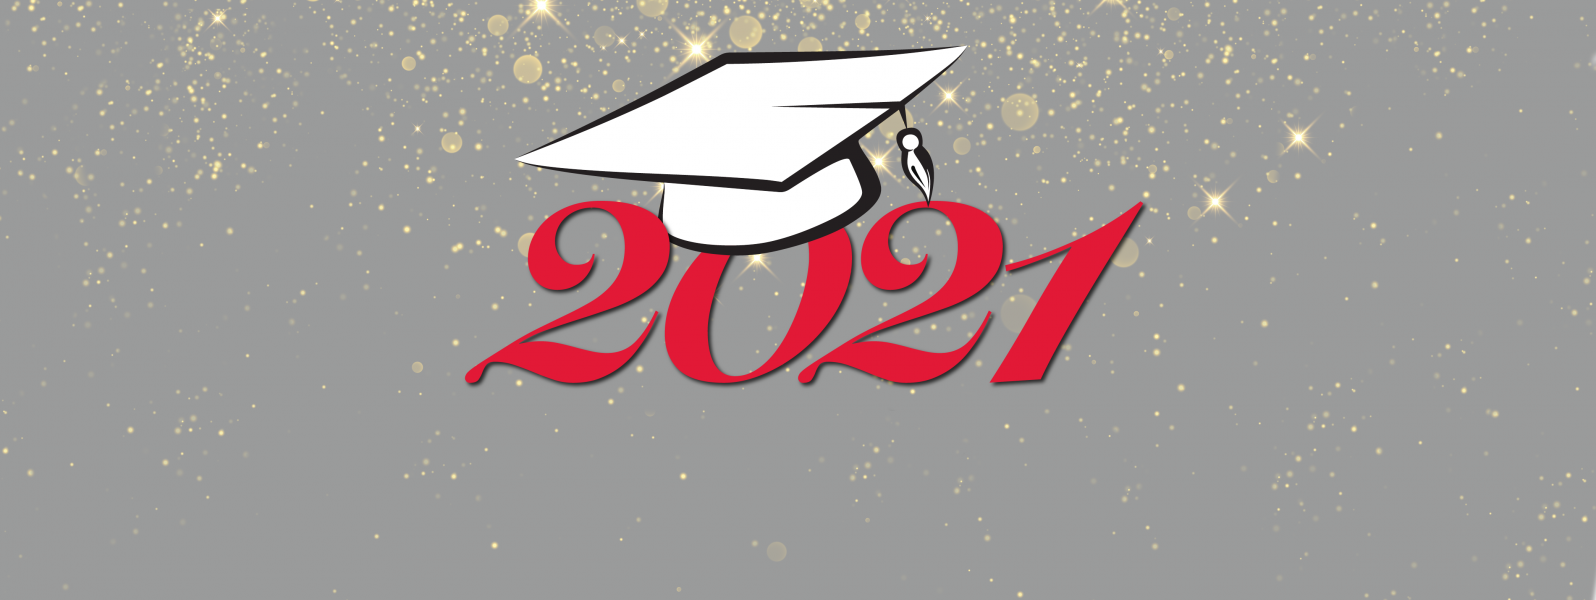 image of Class of 2021 graphic for graduation